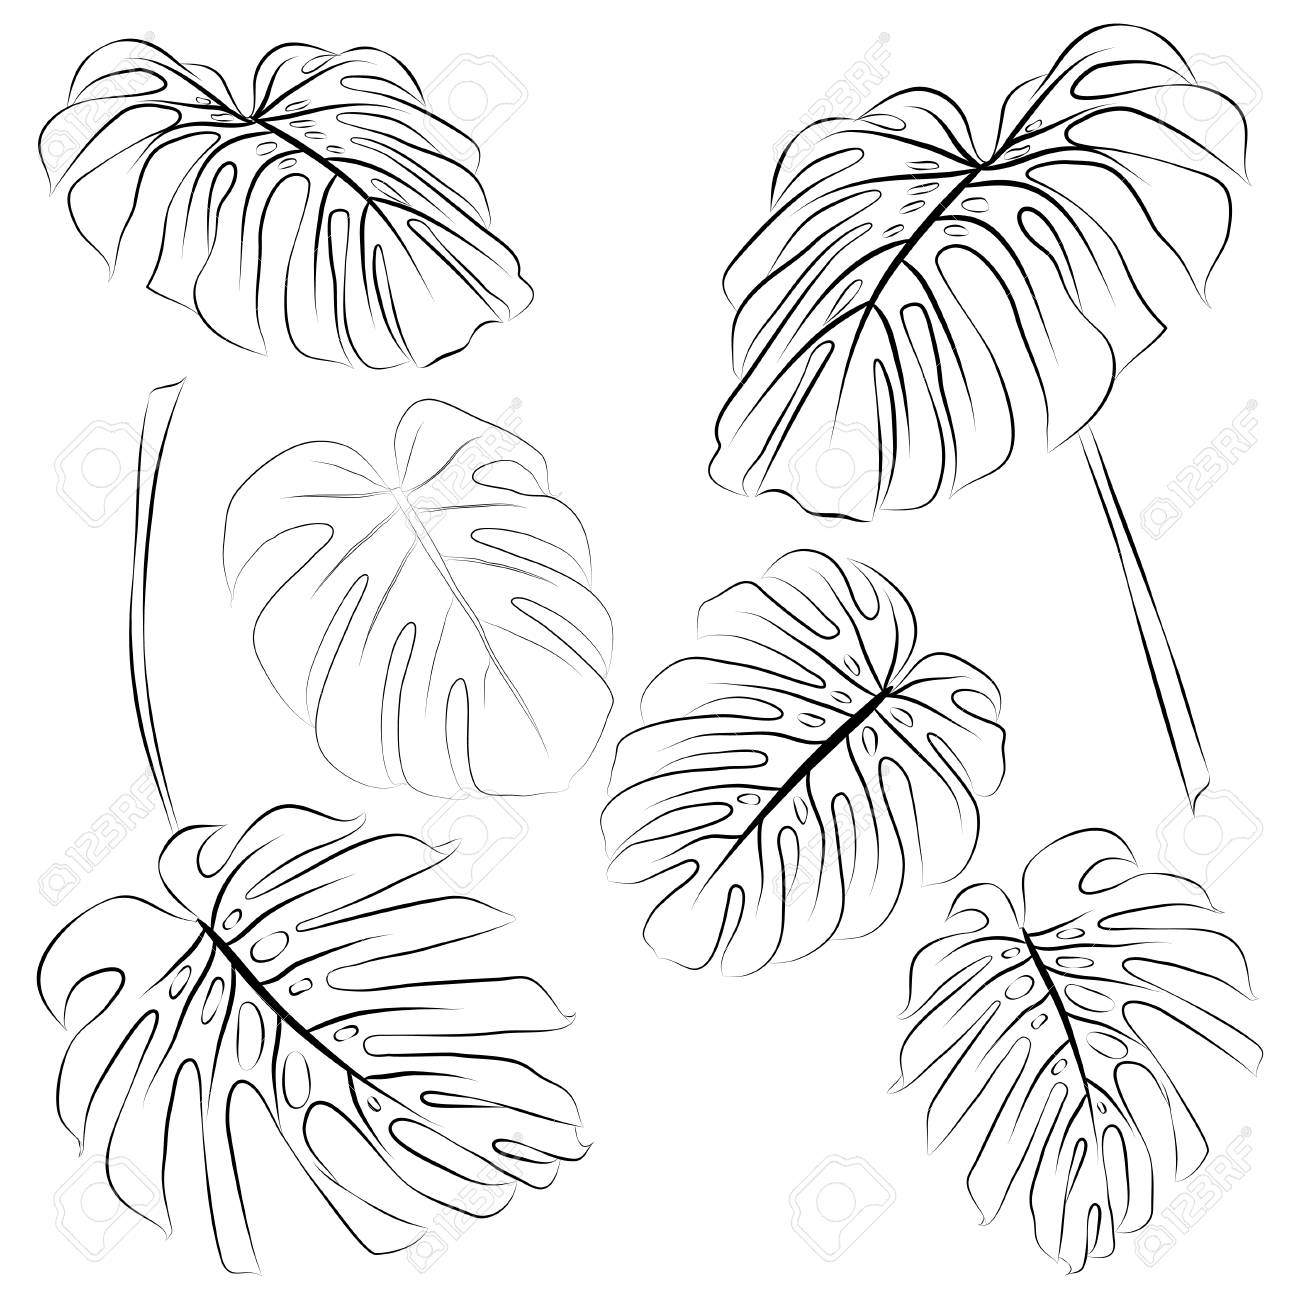 Set Of Tropical Monstera Leaves Outline Vector Illustration Royalty Free Cliparts Vectors And Stock Illustration Image 88966509 Alibaba.com offers 1,329 artificial tropical leaves products. set of tropical monstera leaves outline vector illustration royalty free cliparts vectors and stock illustration image 88966509